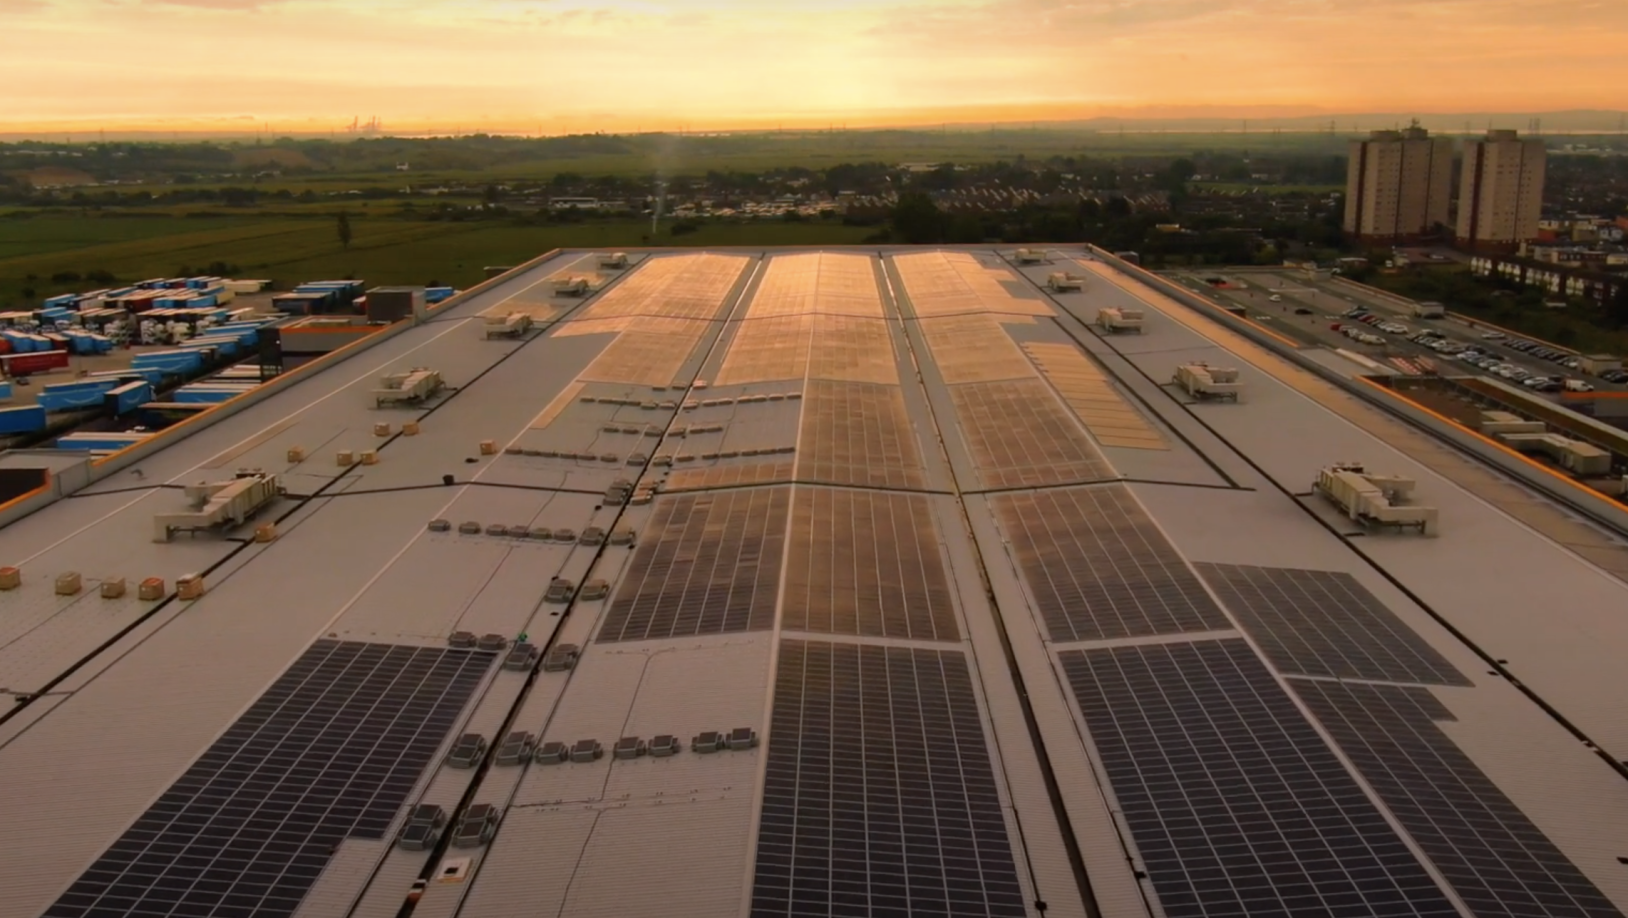 Sustainability in Europe- Solar Panels in Europe, exhibiting solar panels on a roof & sunset